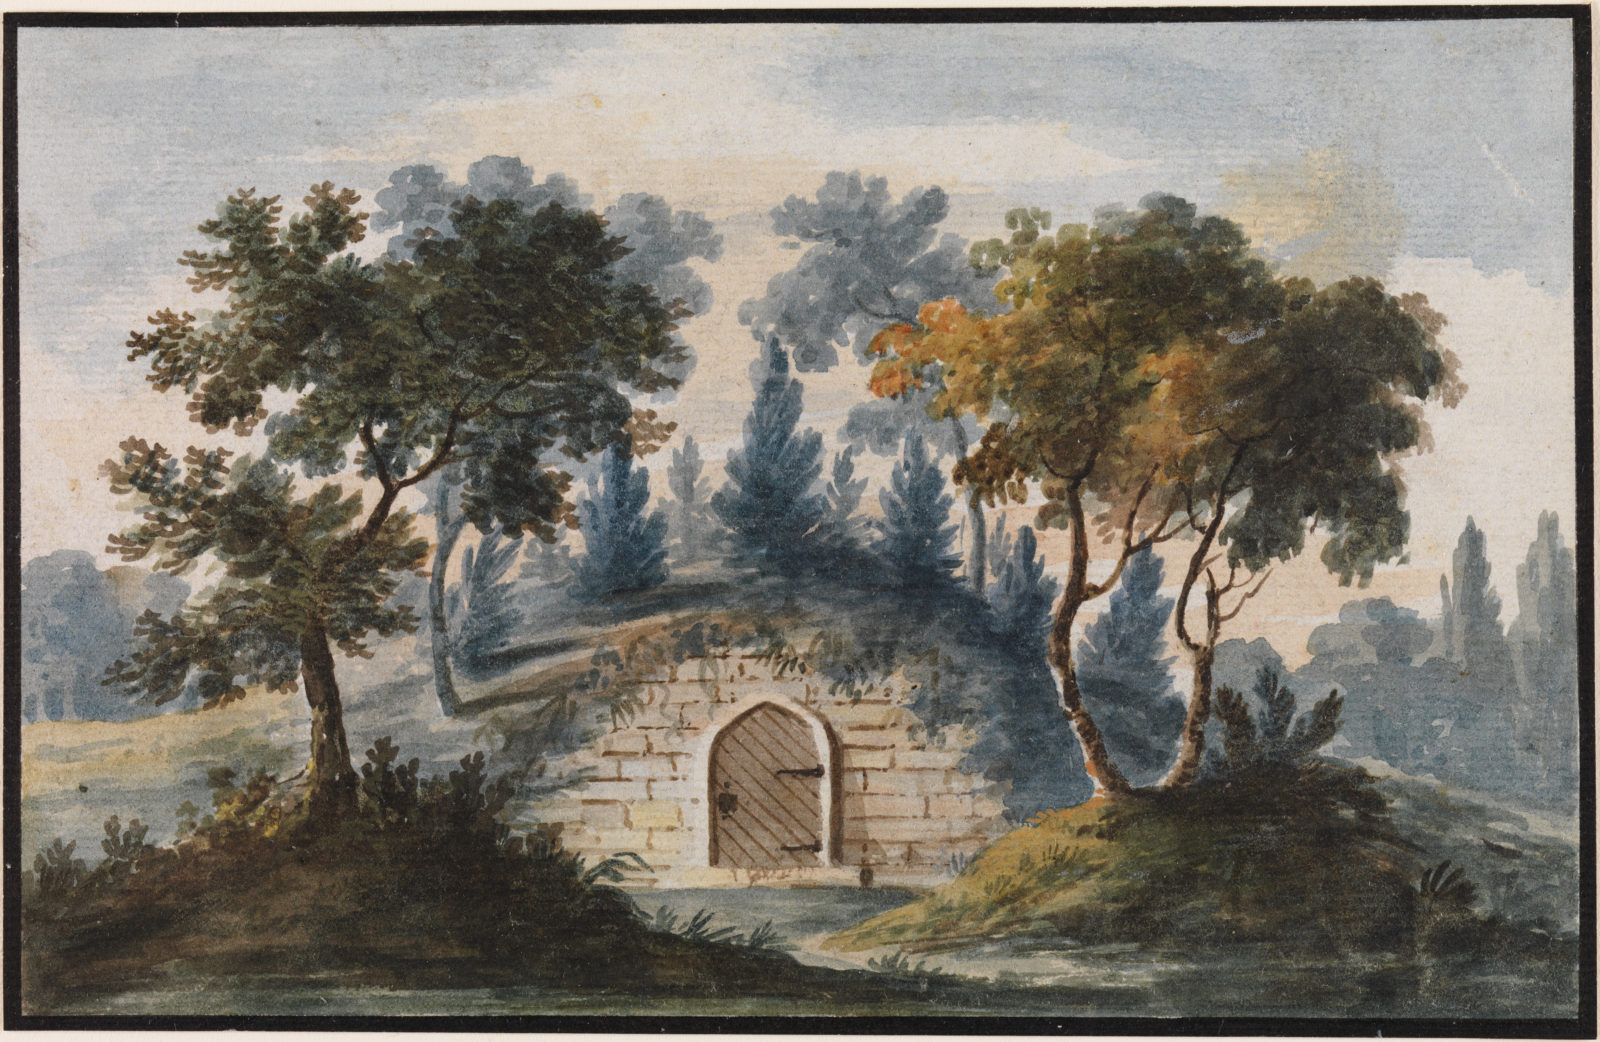 General Washington's Tomb at Mount Vernon (Copy after Engraving in The Port Folio Magazine, 1810)